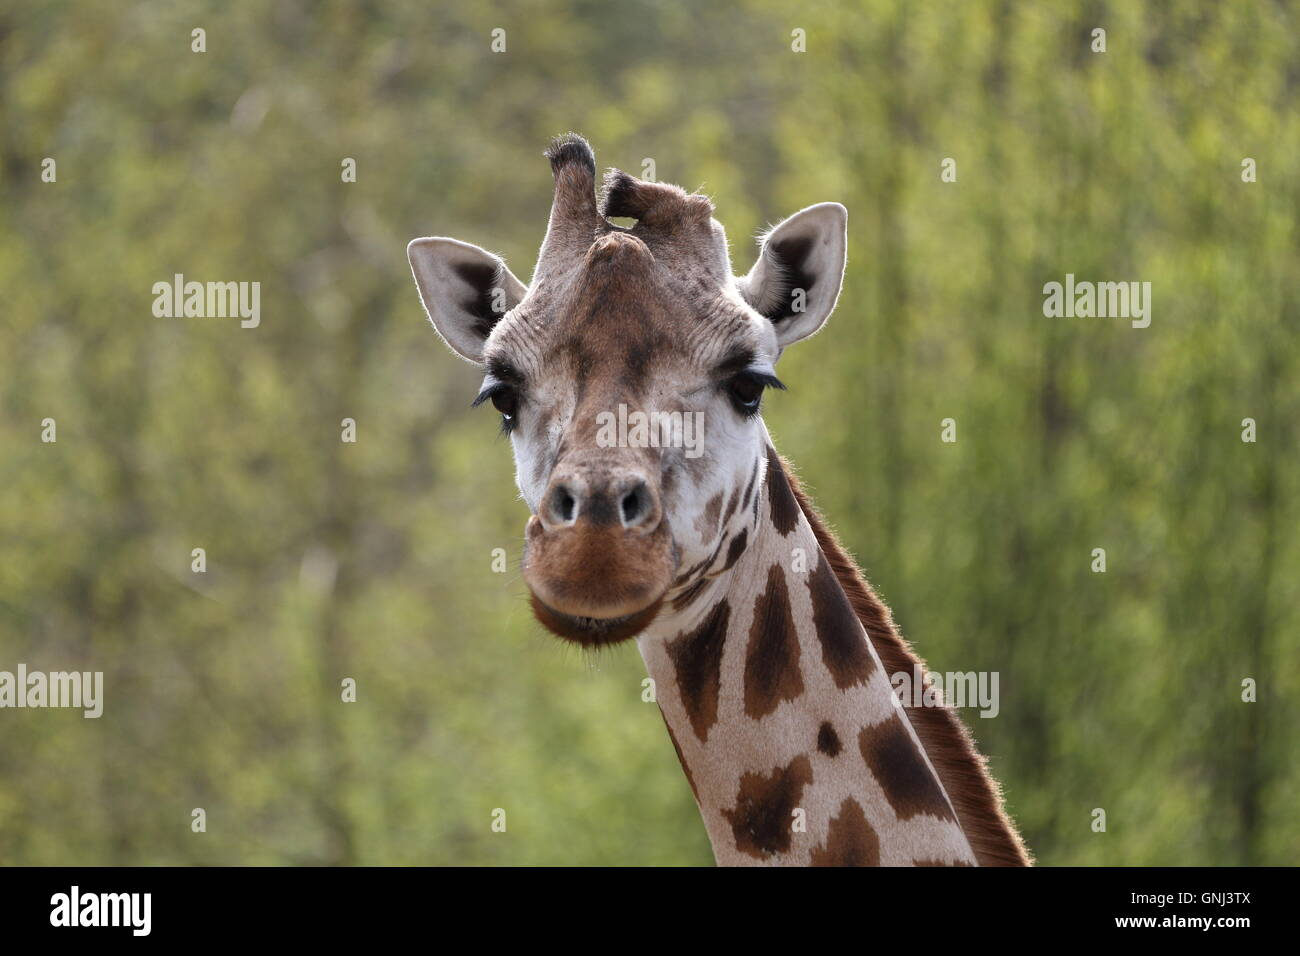 A photo of the head of a young female giraffe (Giraffa camelopardalis) seen from the side, with a blurry background. - Stock Image